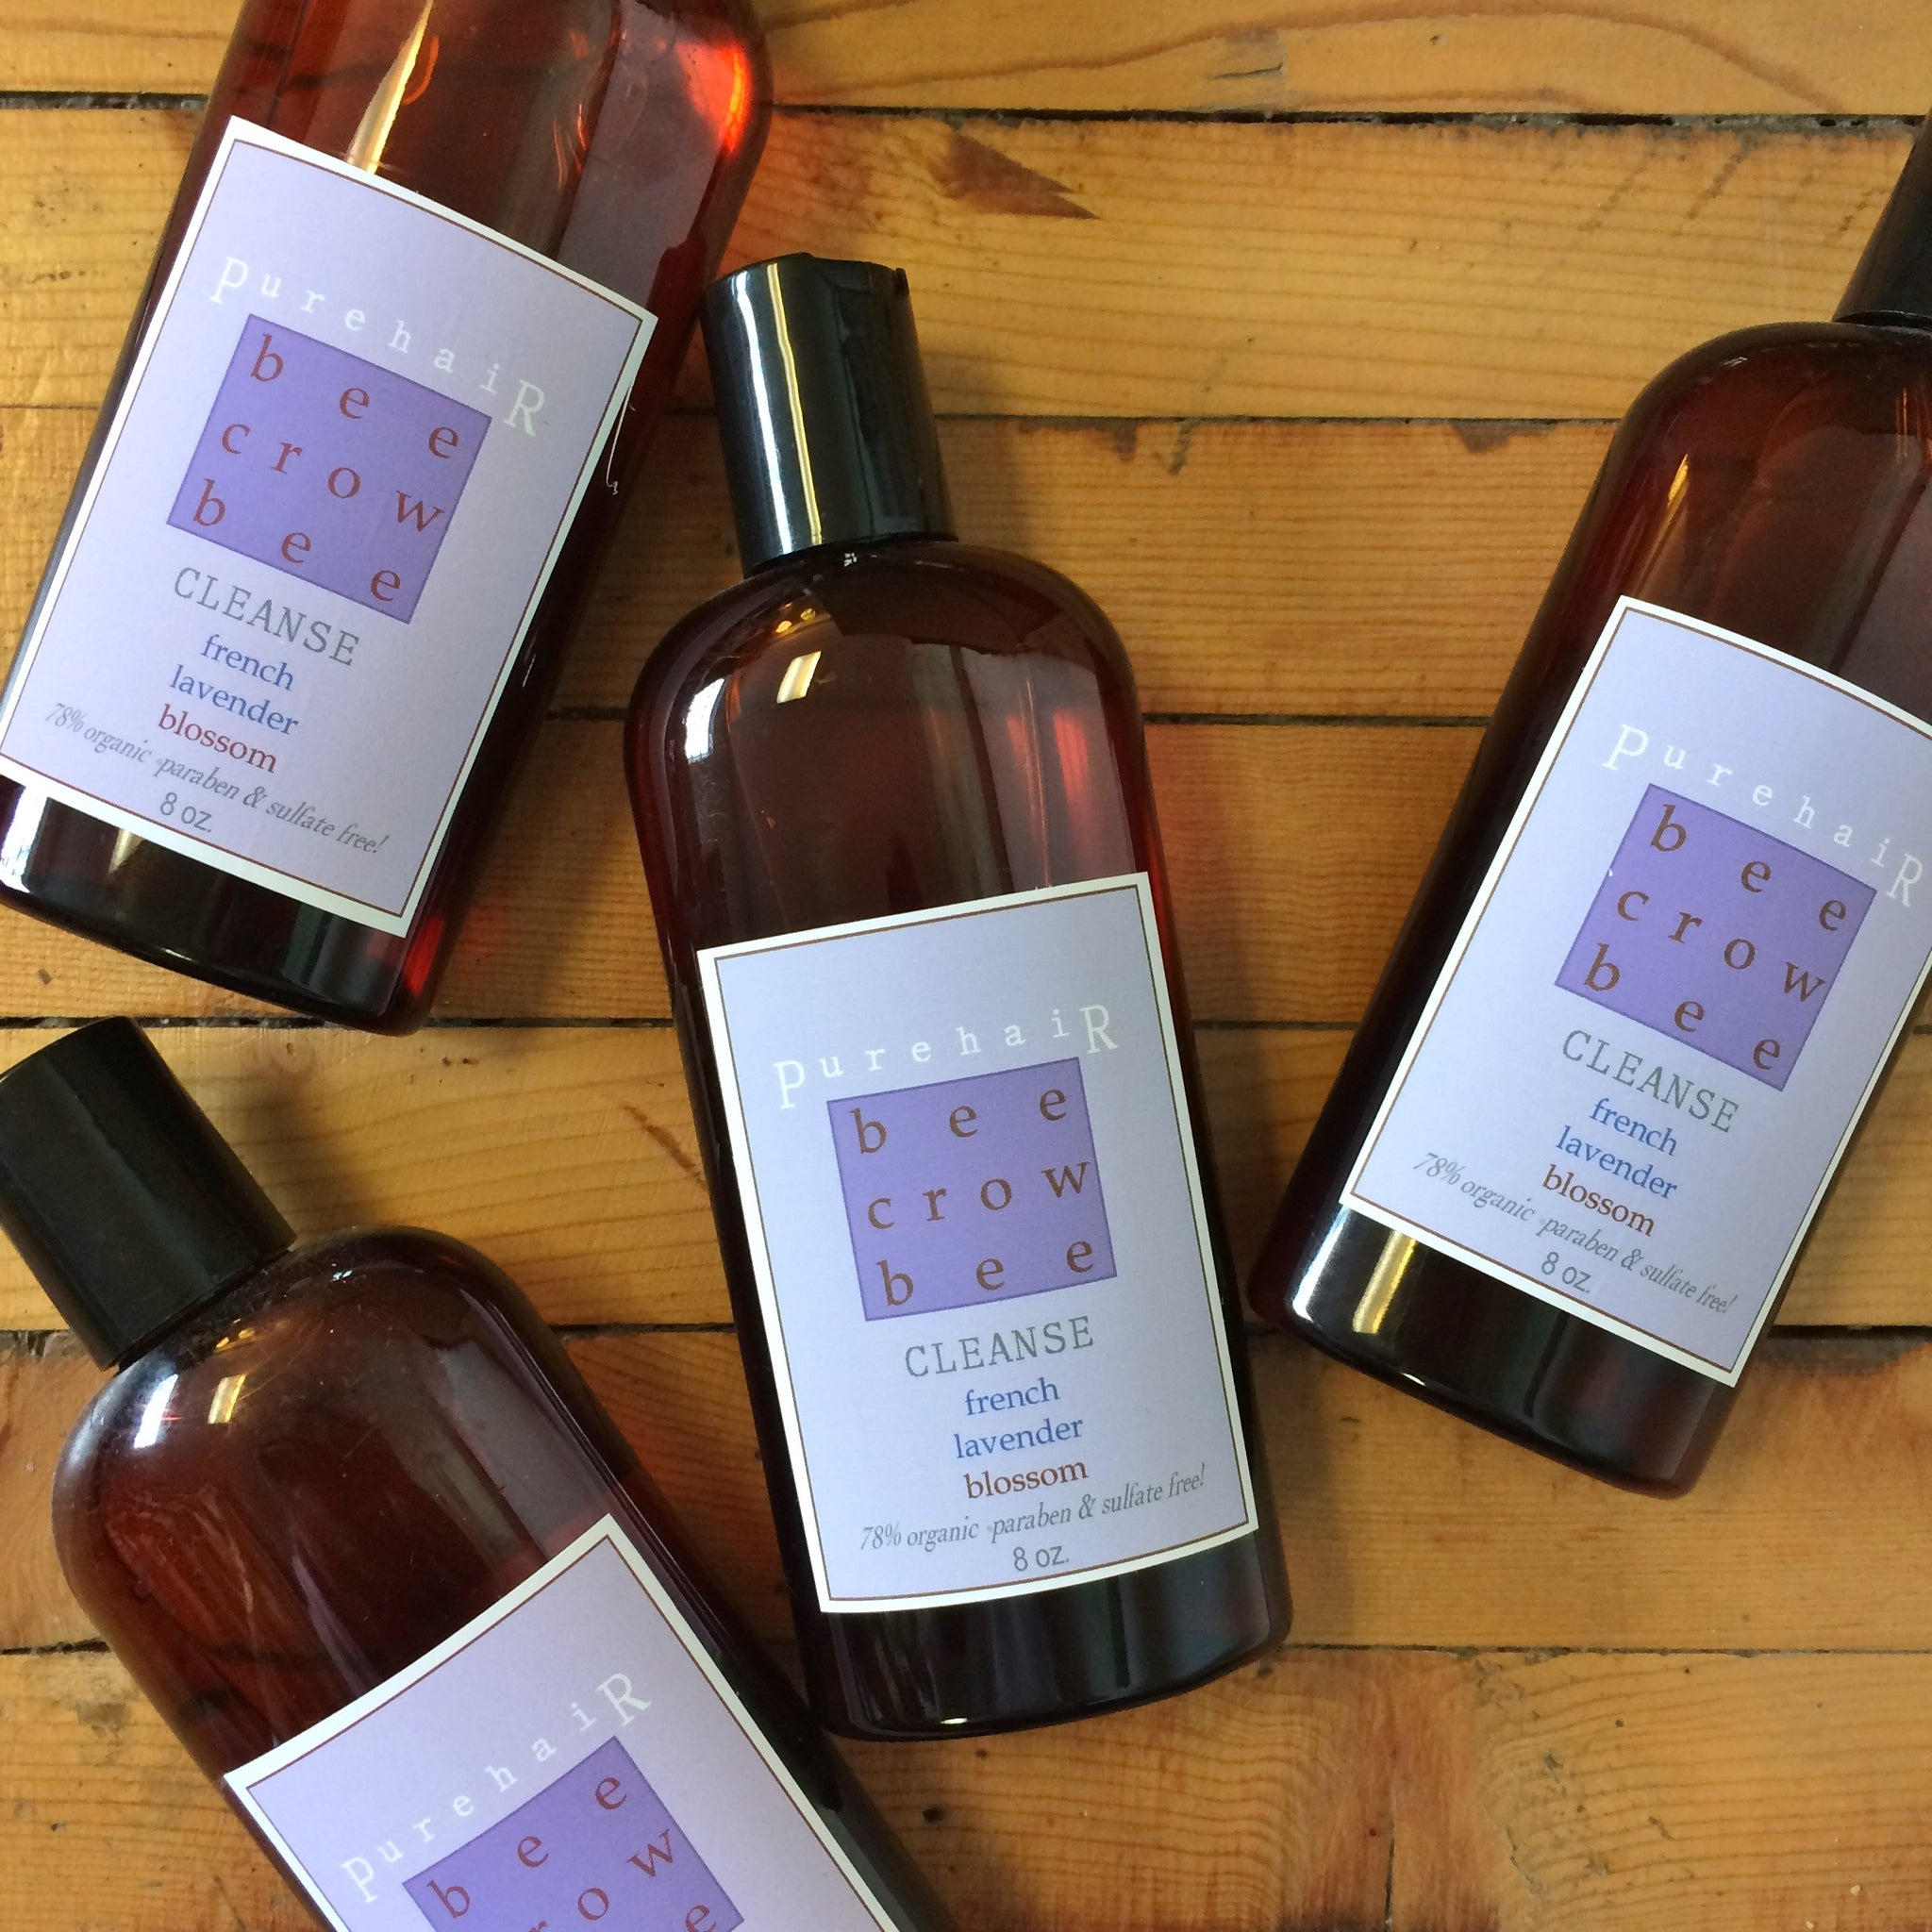 french lavender blossom cleanse